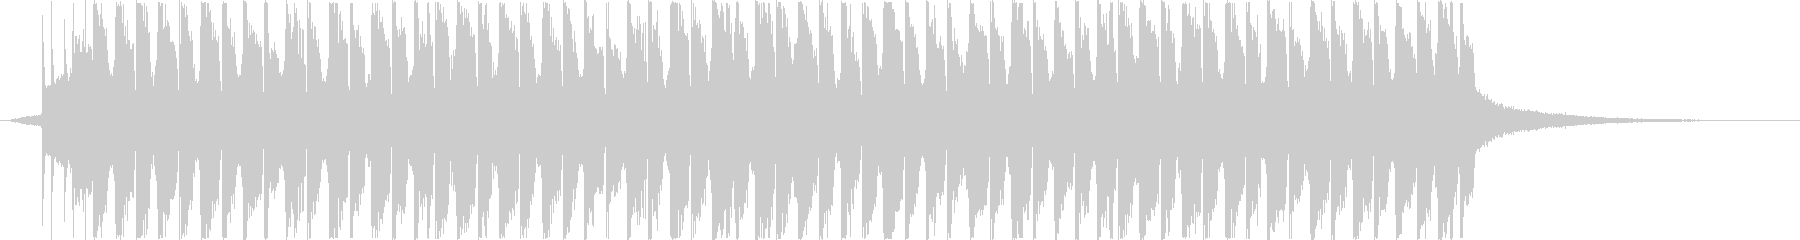 Short BGM suitable for ghosts and Halloween's unreproduced waveform